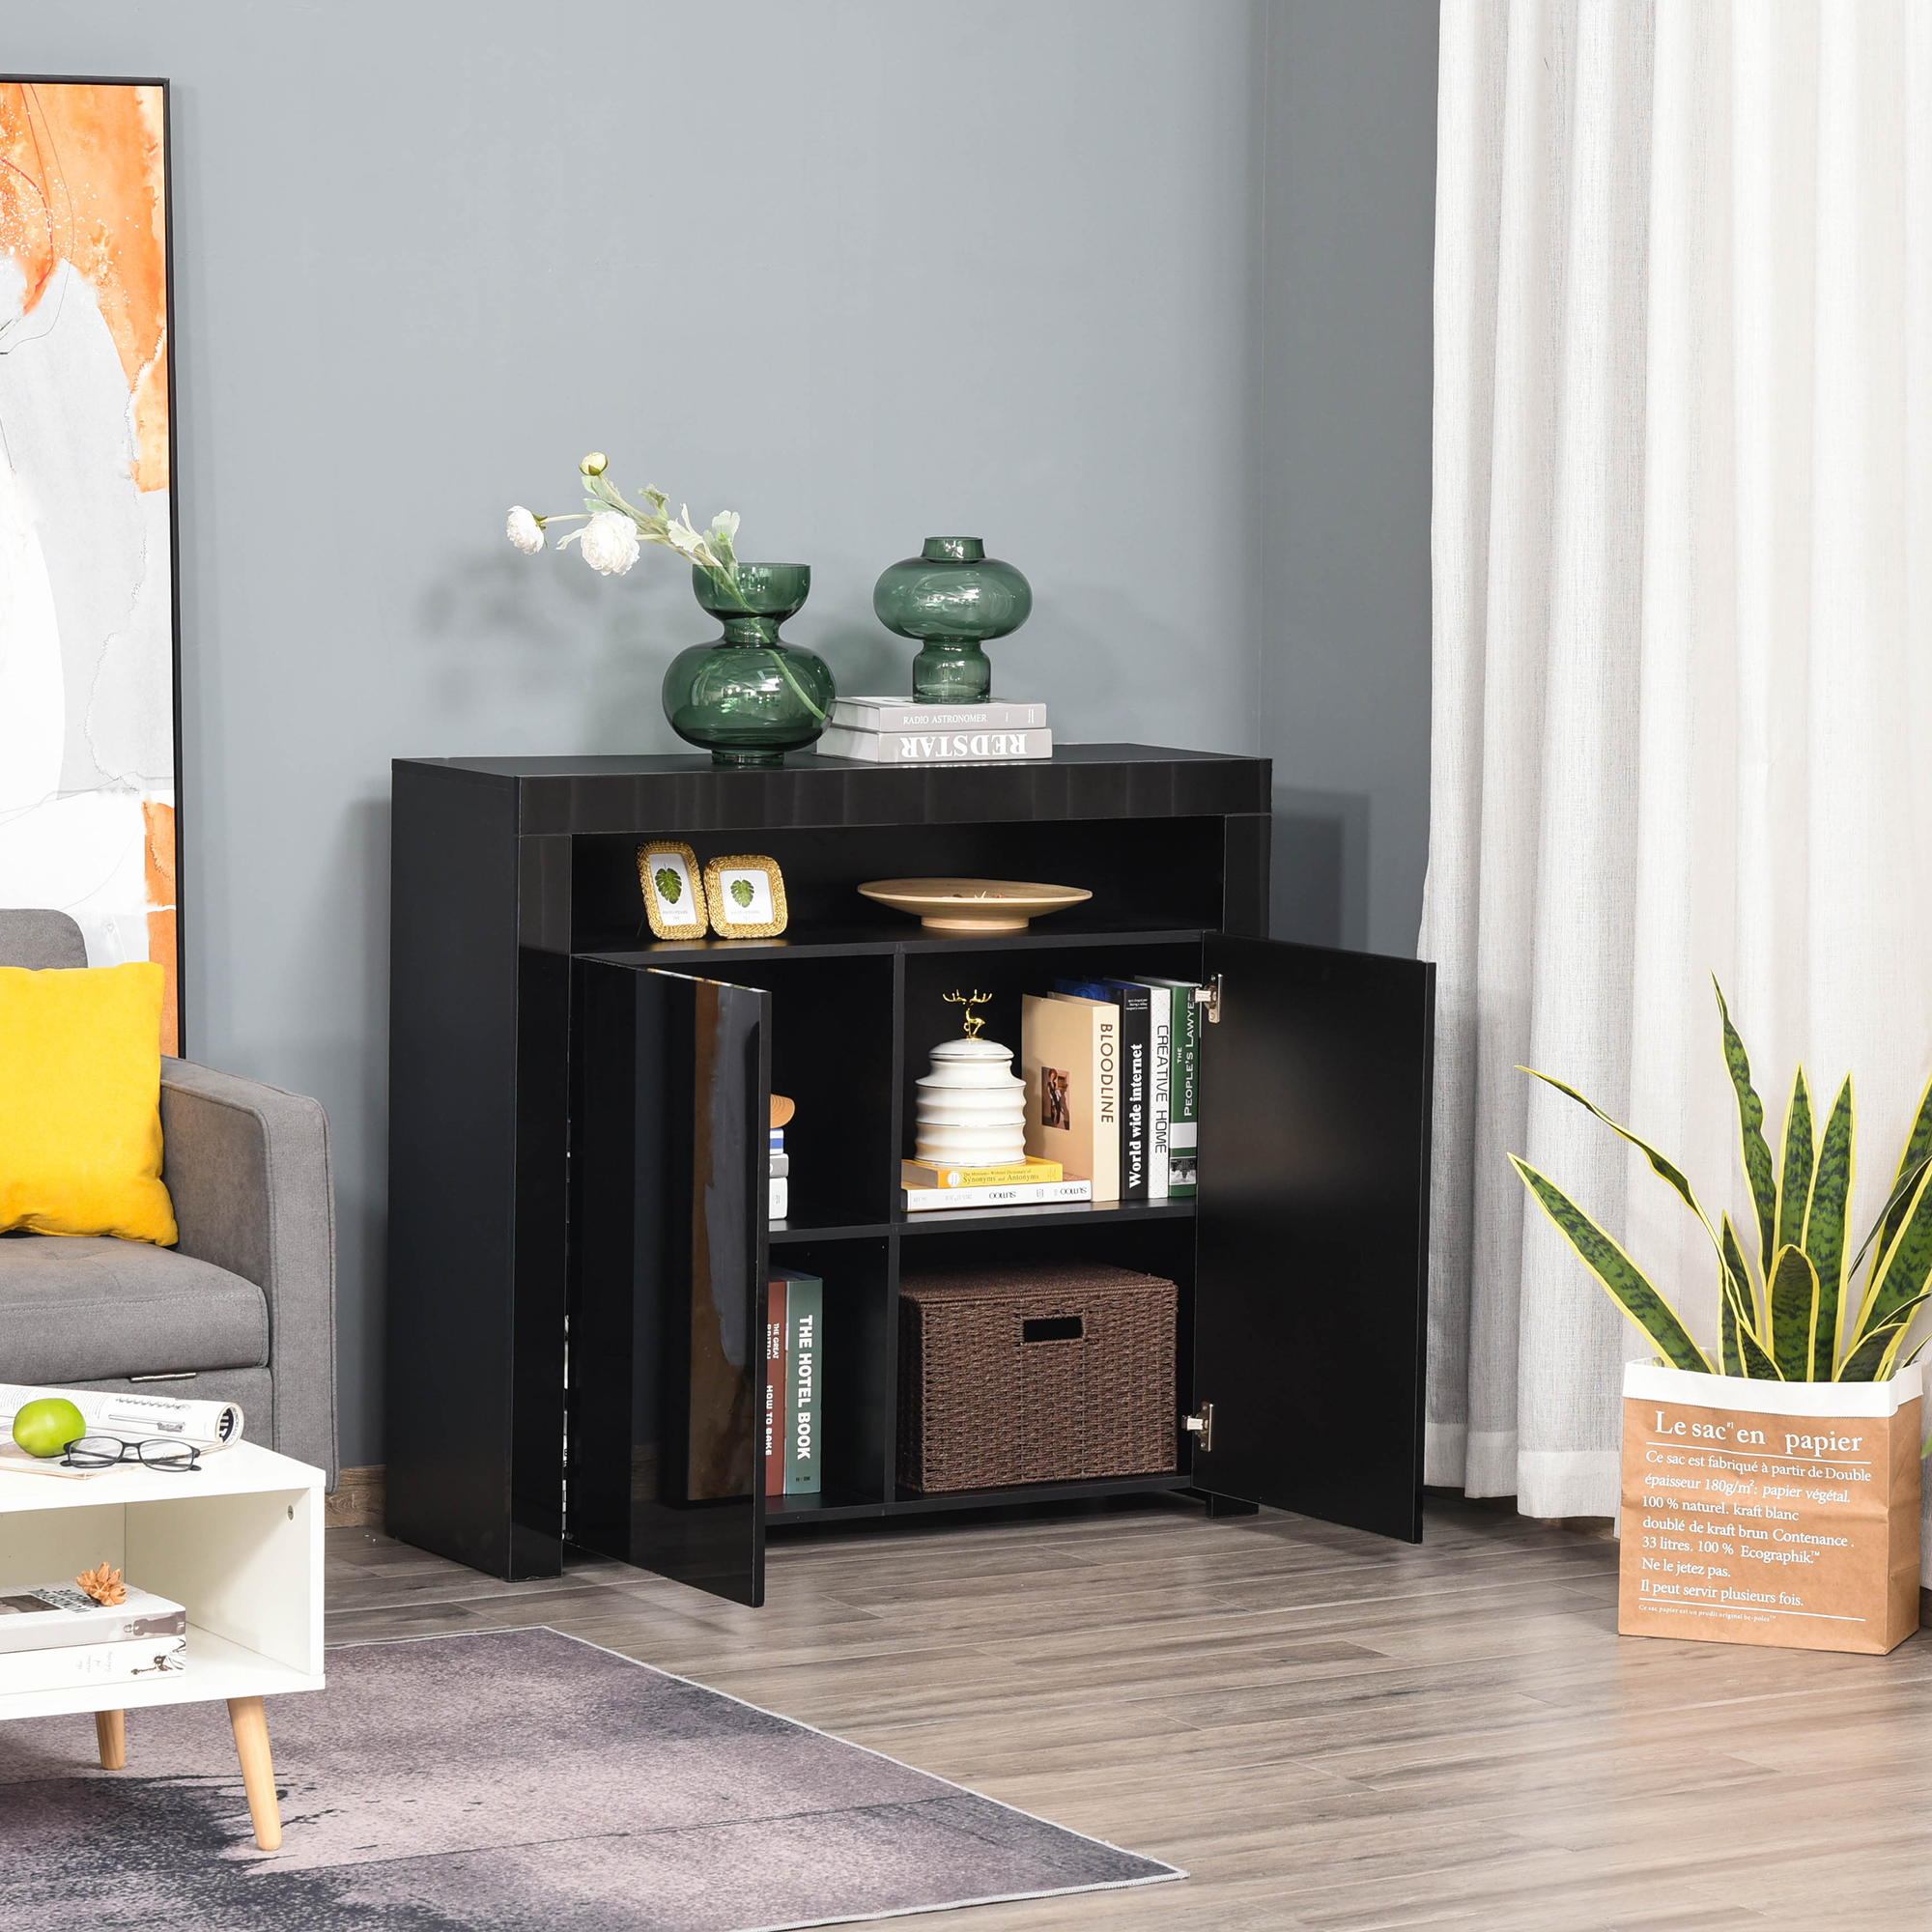 thumbnail 8 - High Gloss LED Cabinet Cupboard Sideboard Console with RGB Lighting